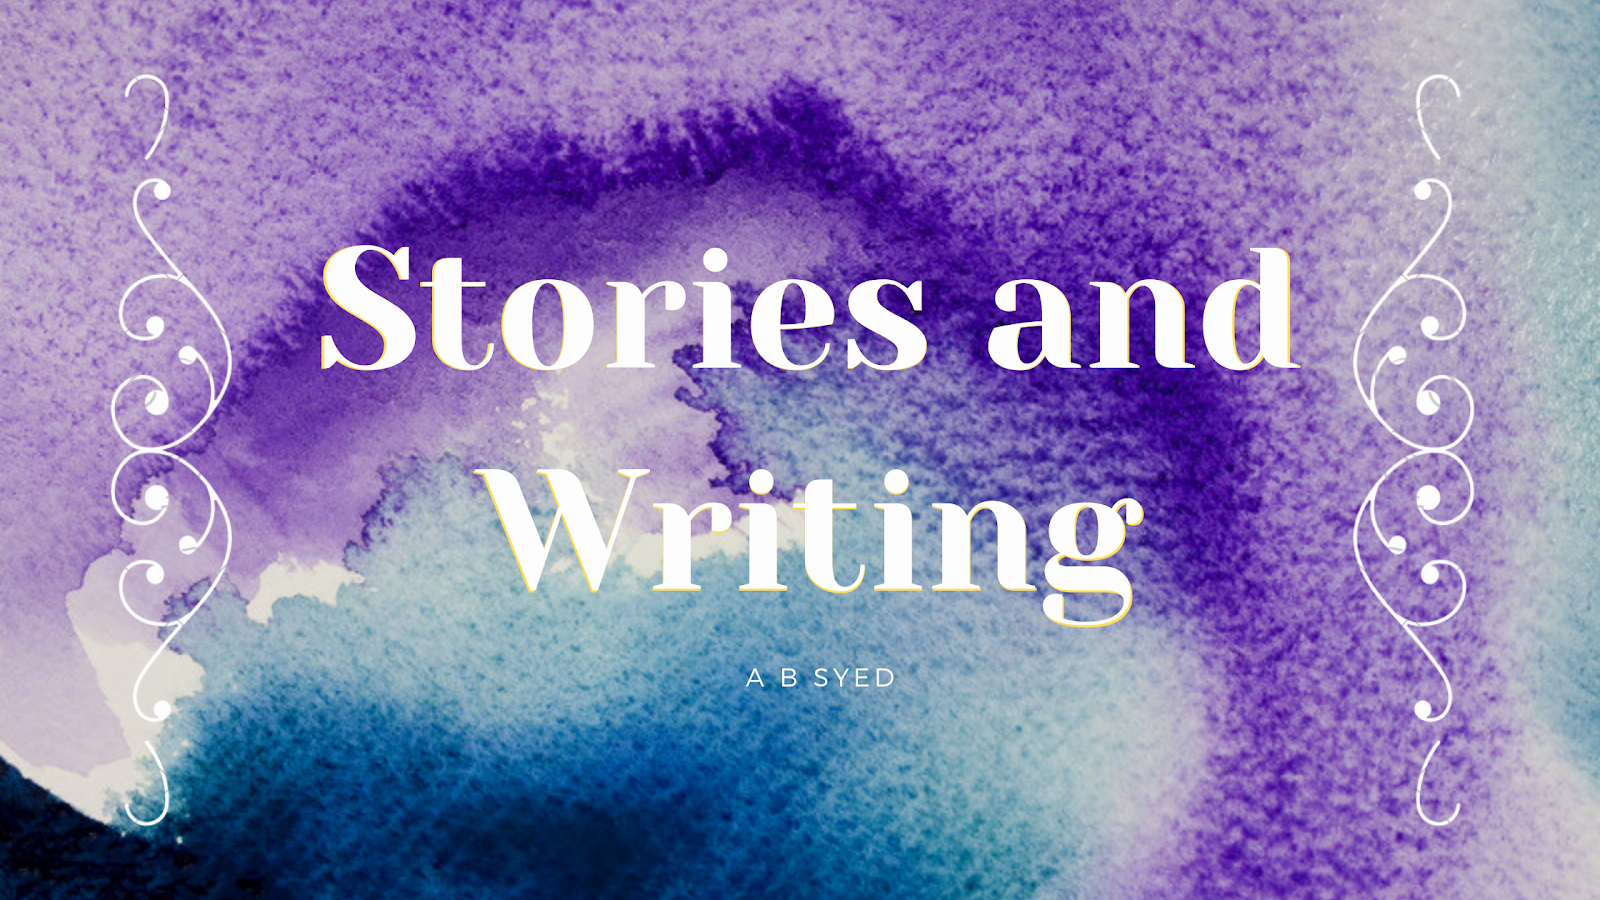 Stories and Writing